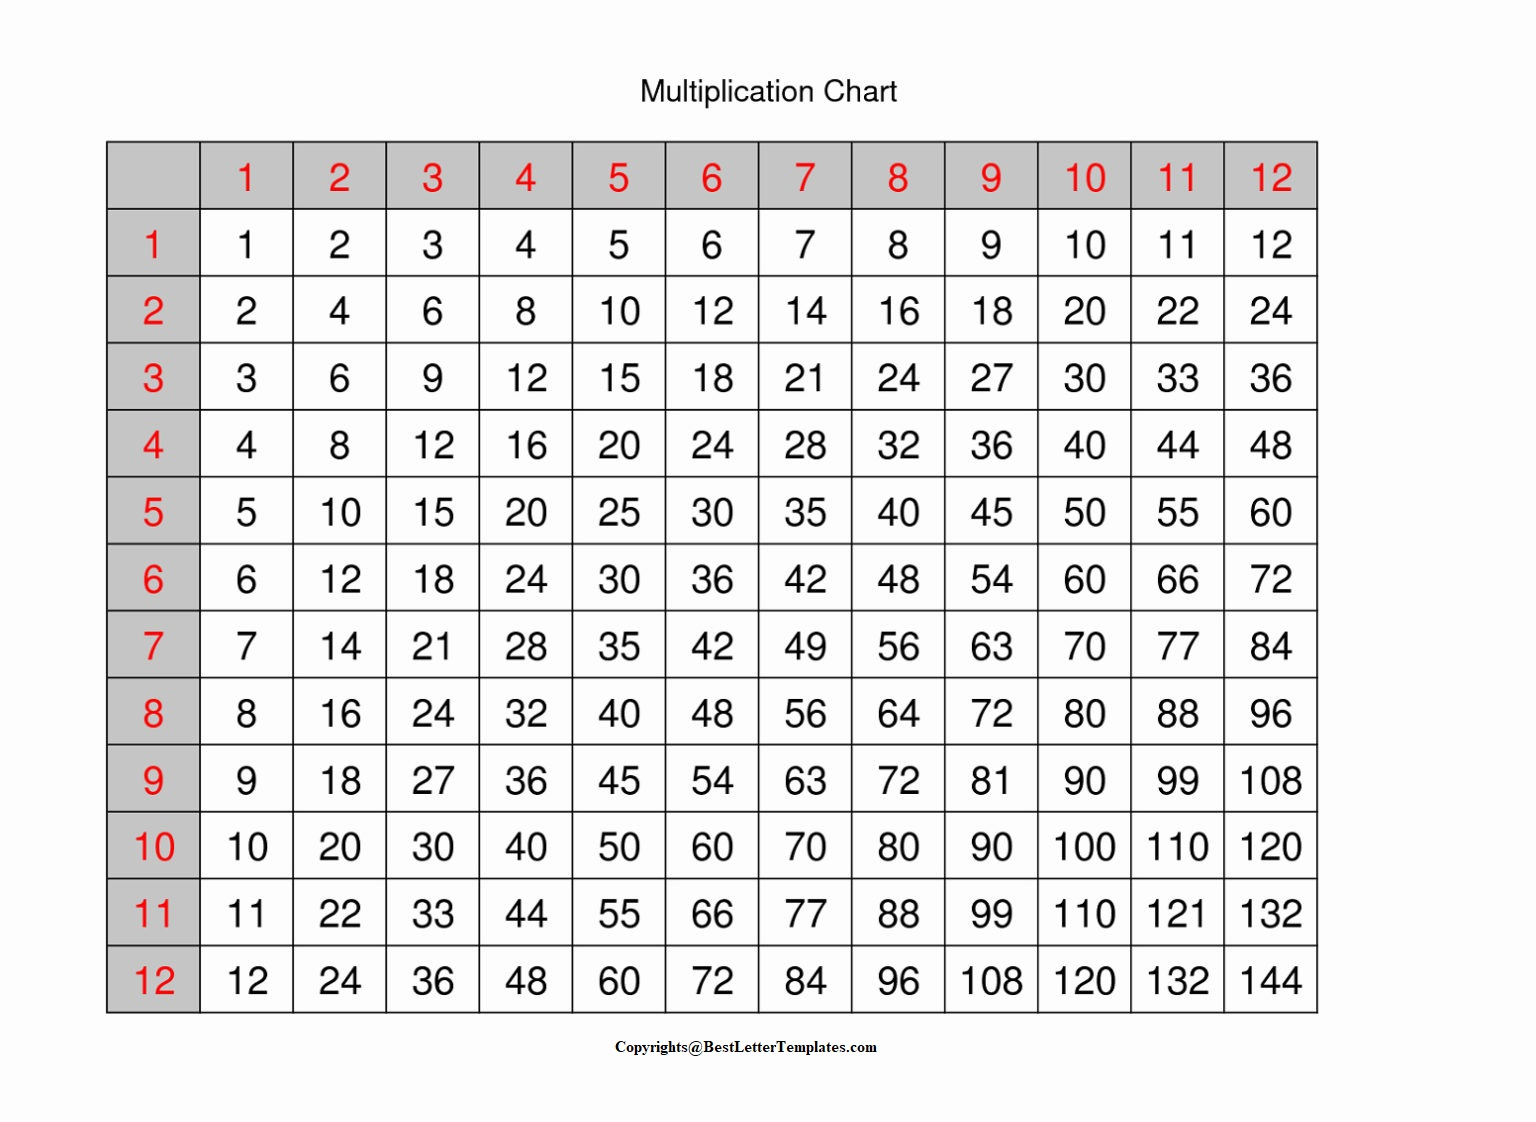 4+ Free Printable Blank Multiplication Table 1-12 Chart PDF | Best Letter Templates